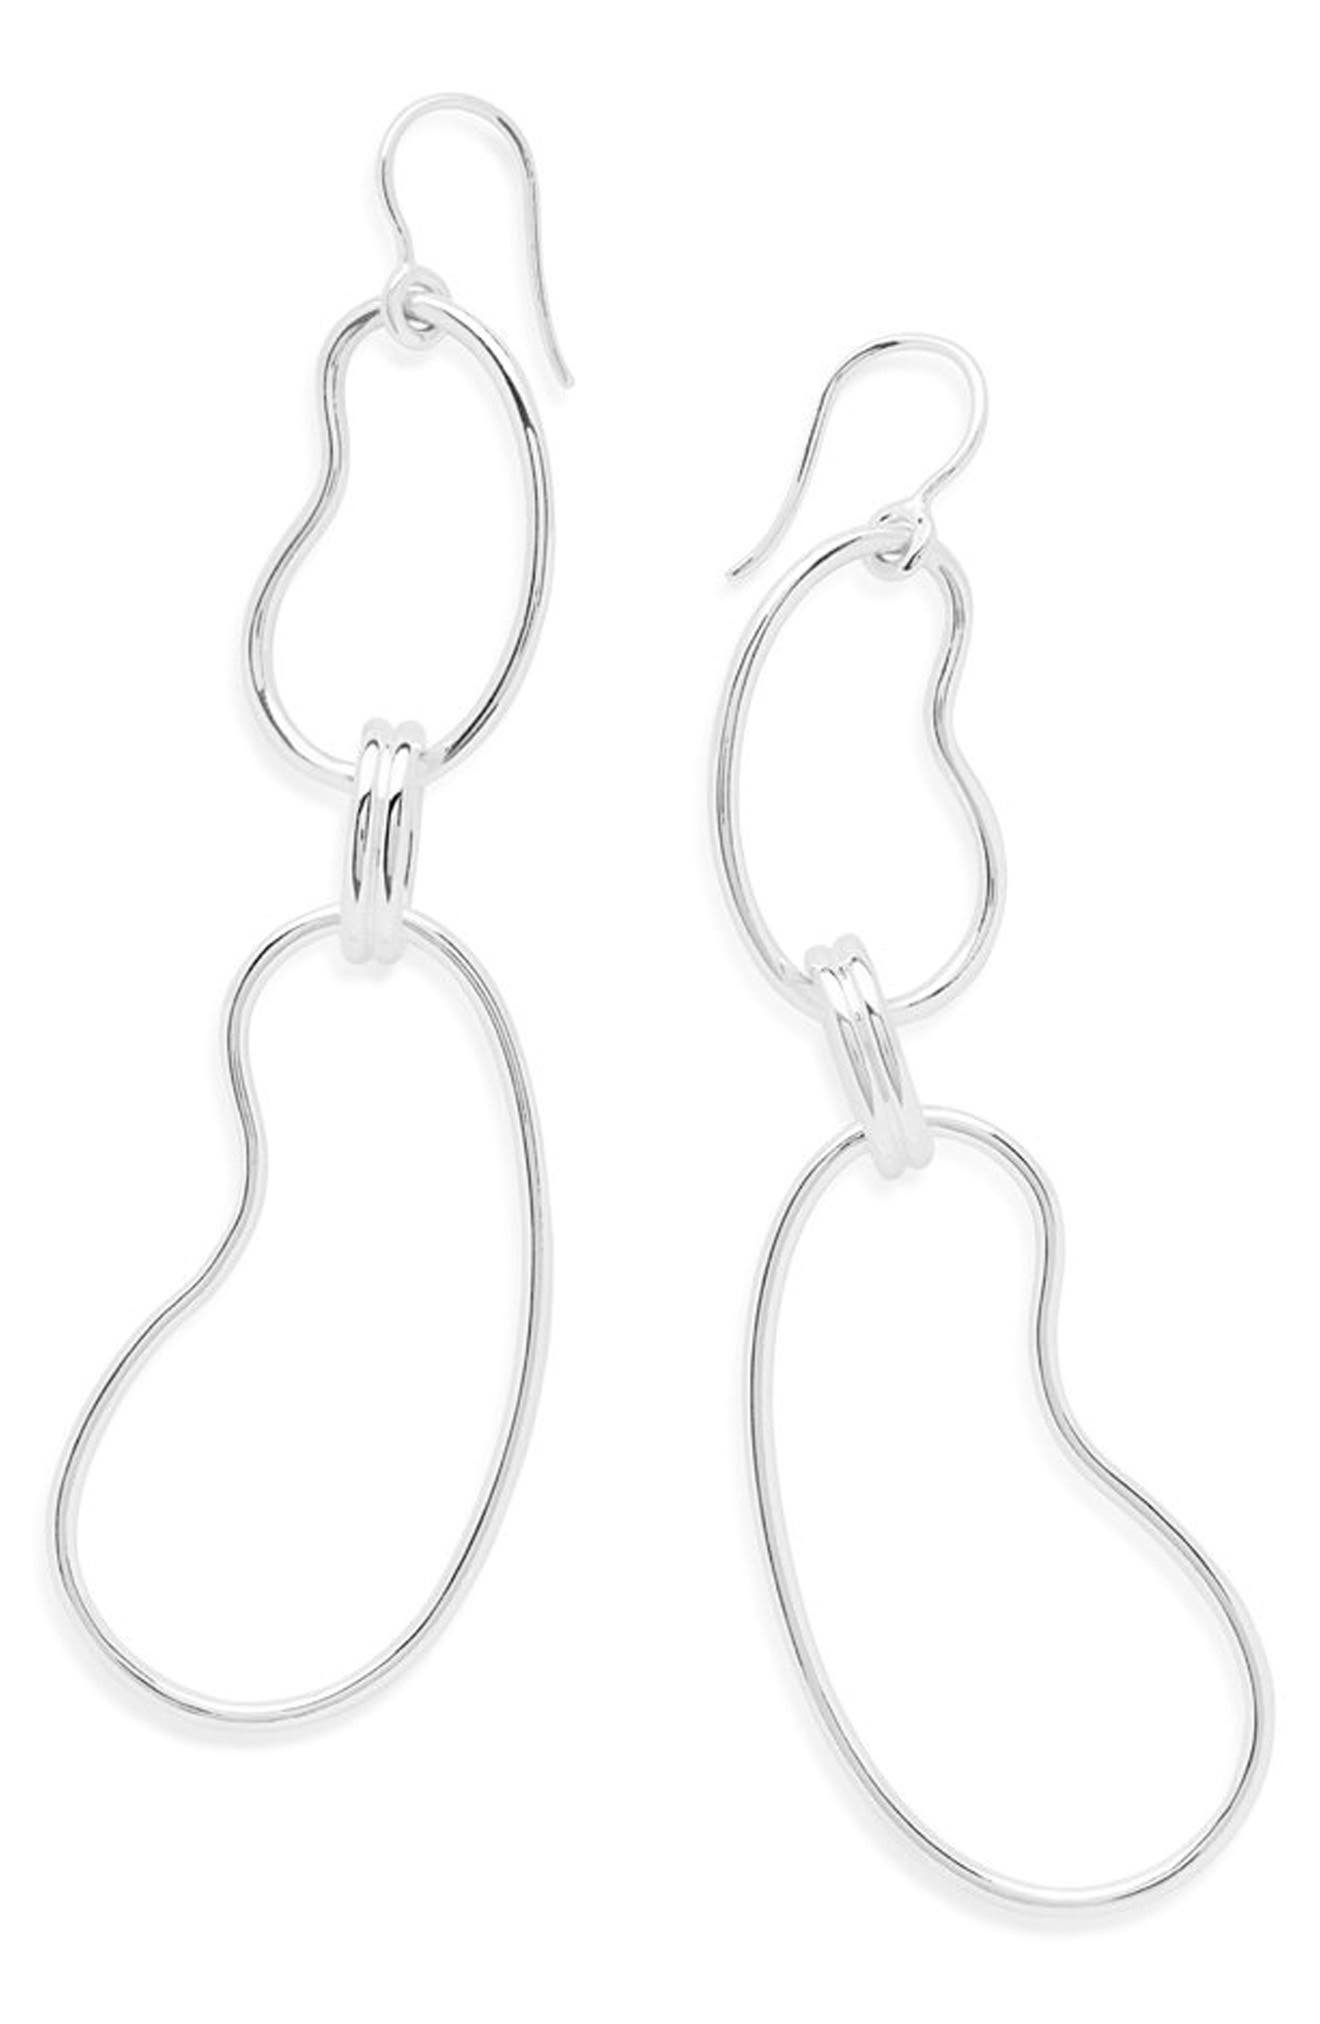 Ippolita Classico Kidney Oval Link Earrings